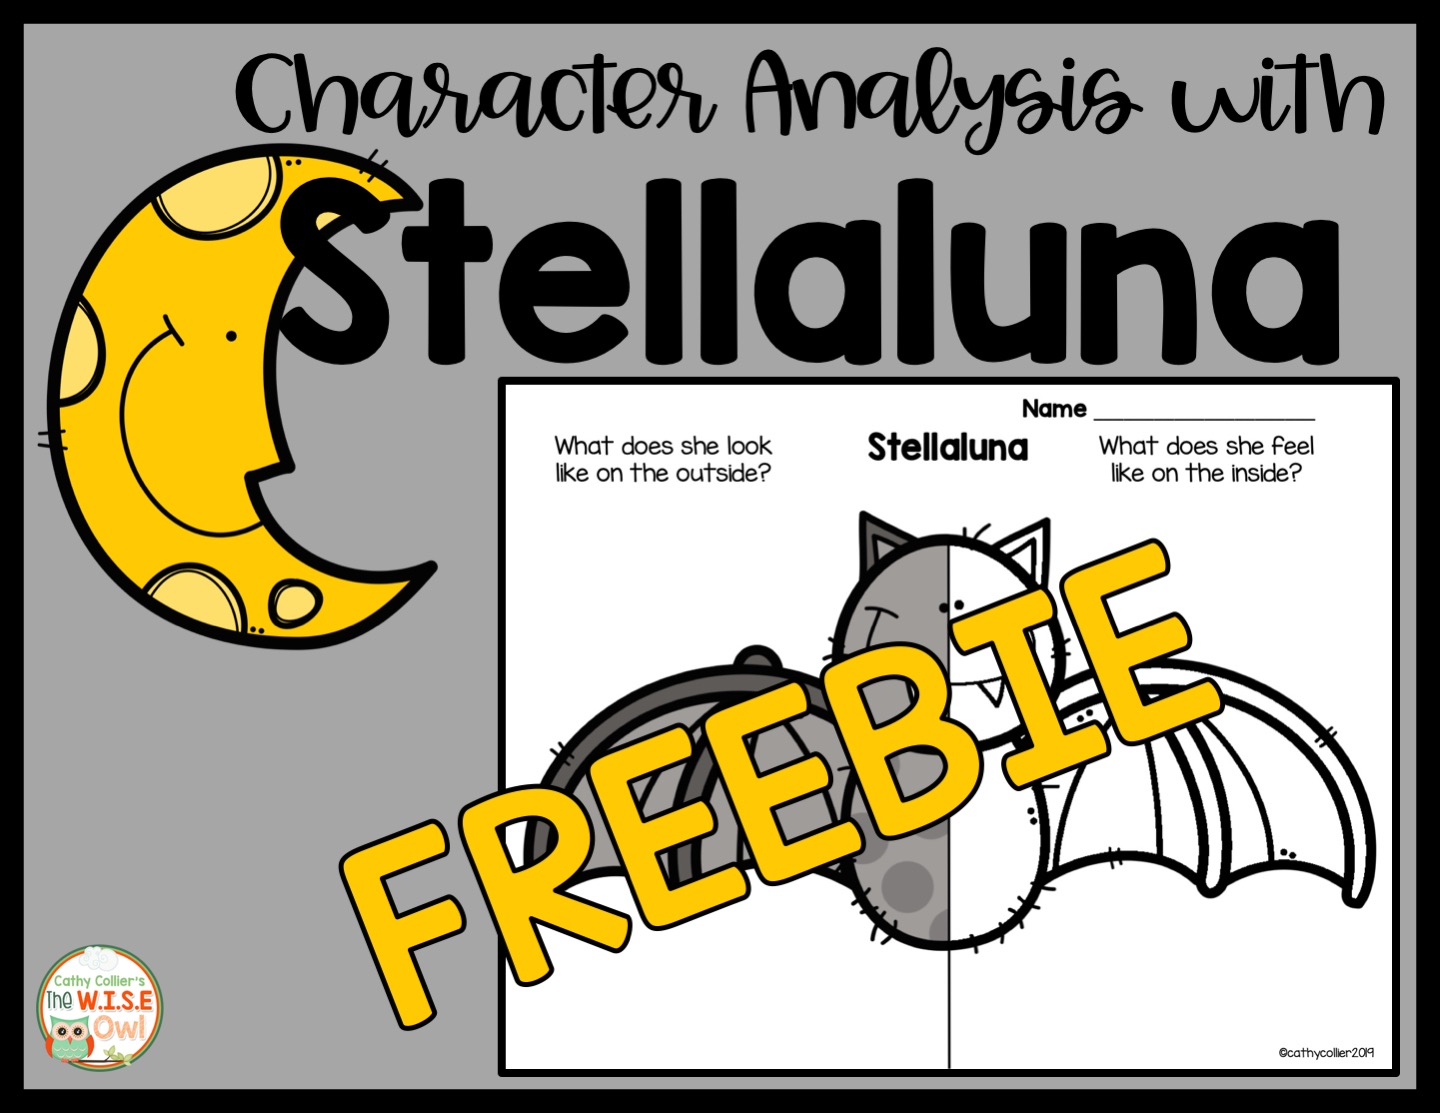 Characterysis With Stellaluna